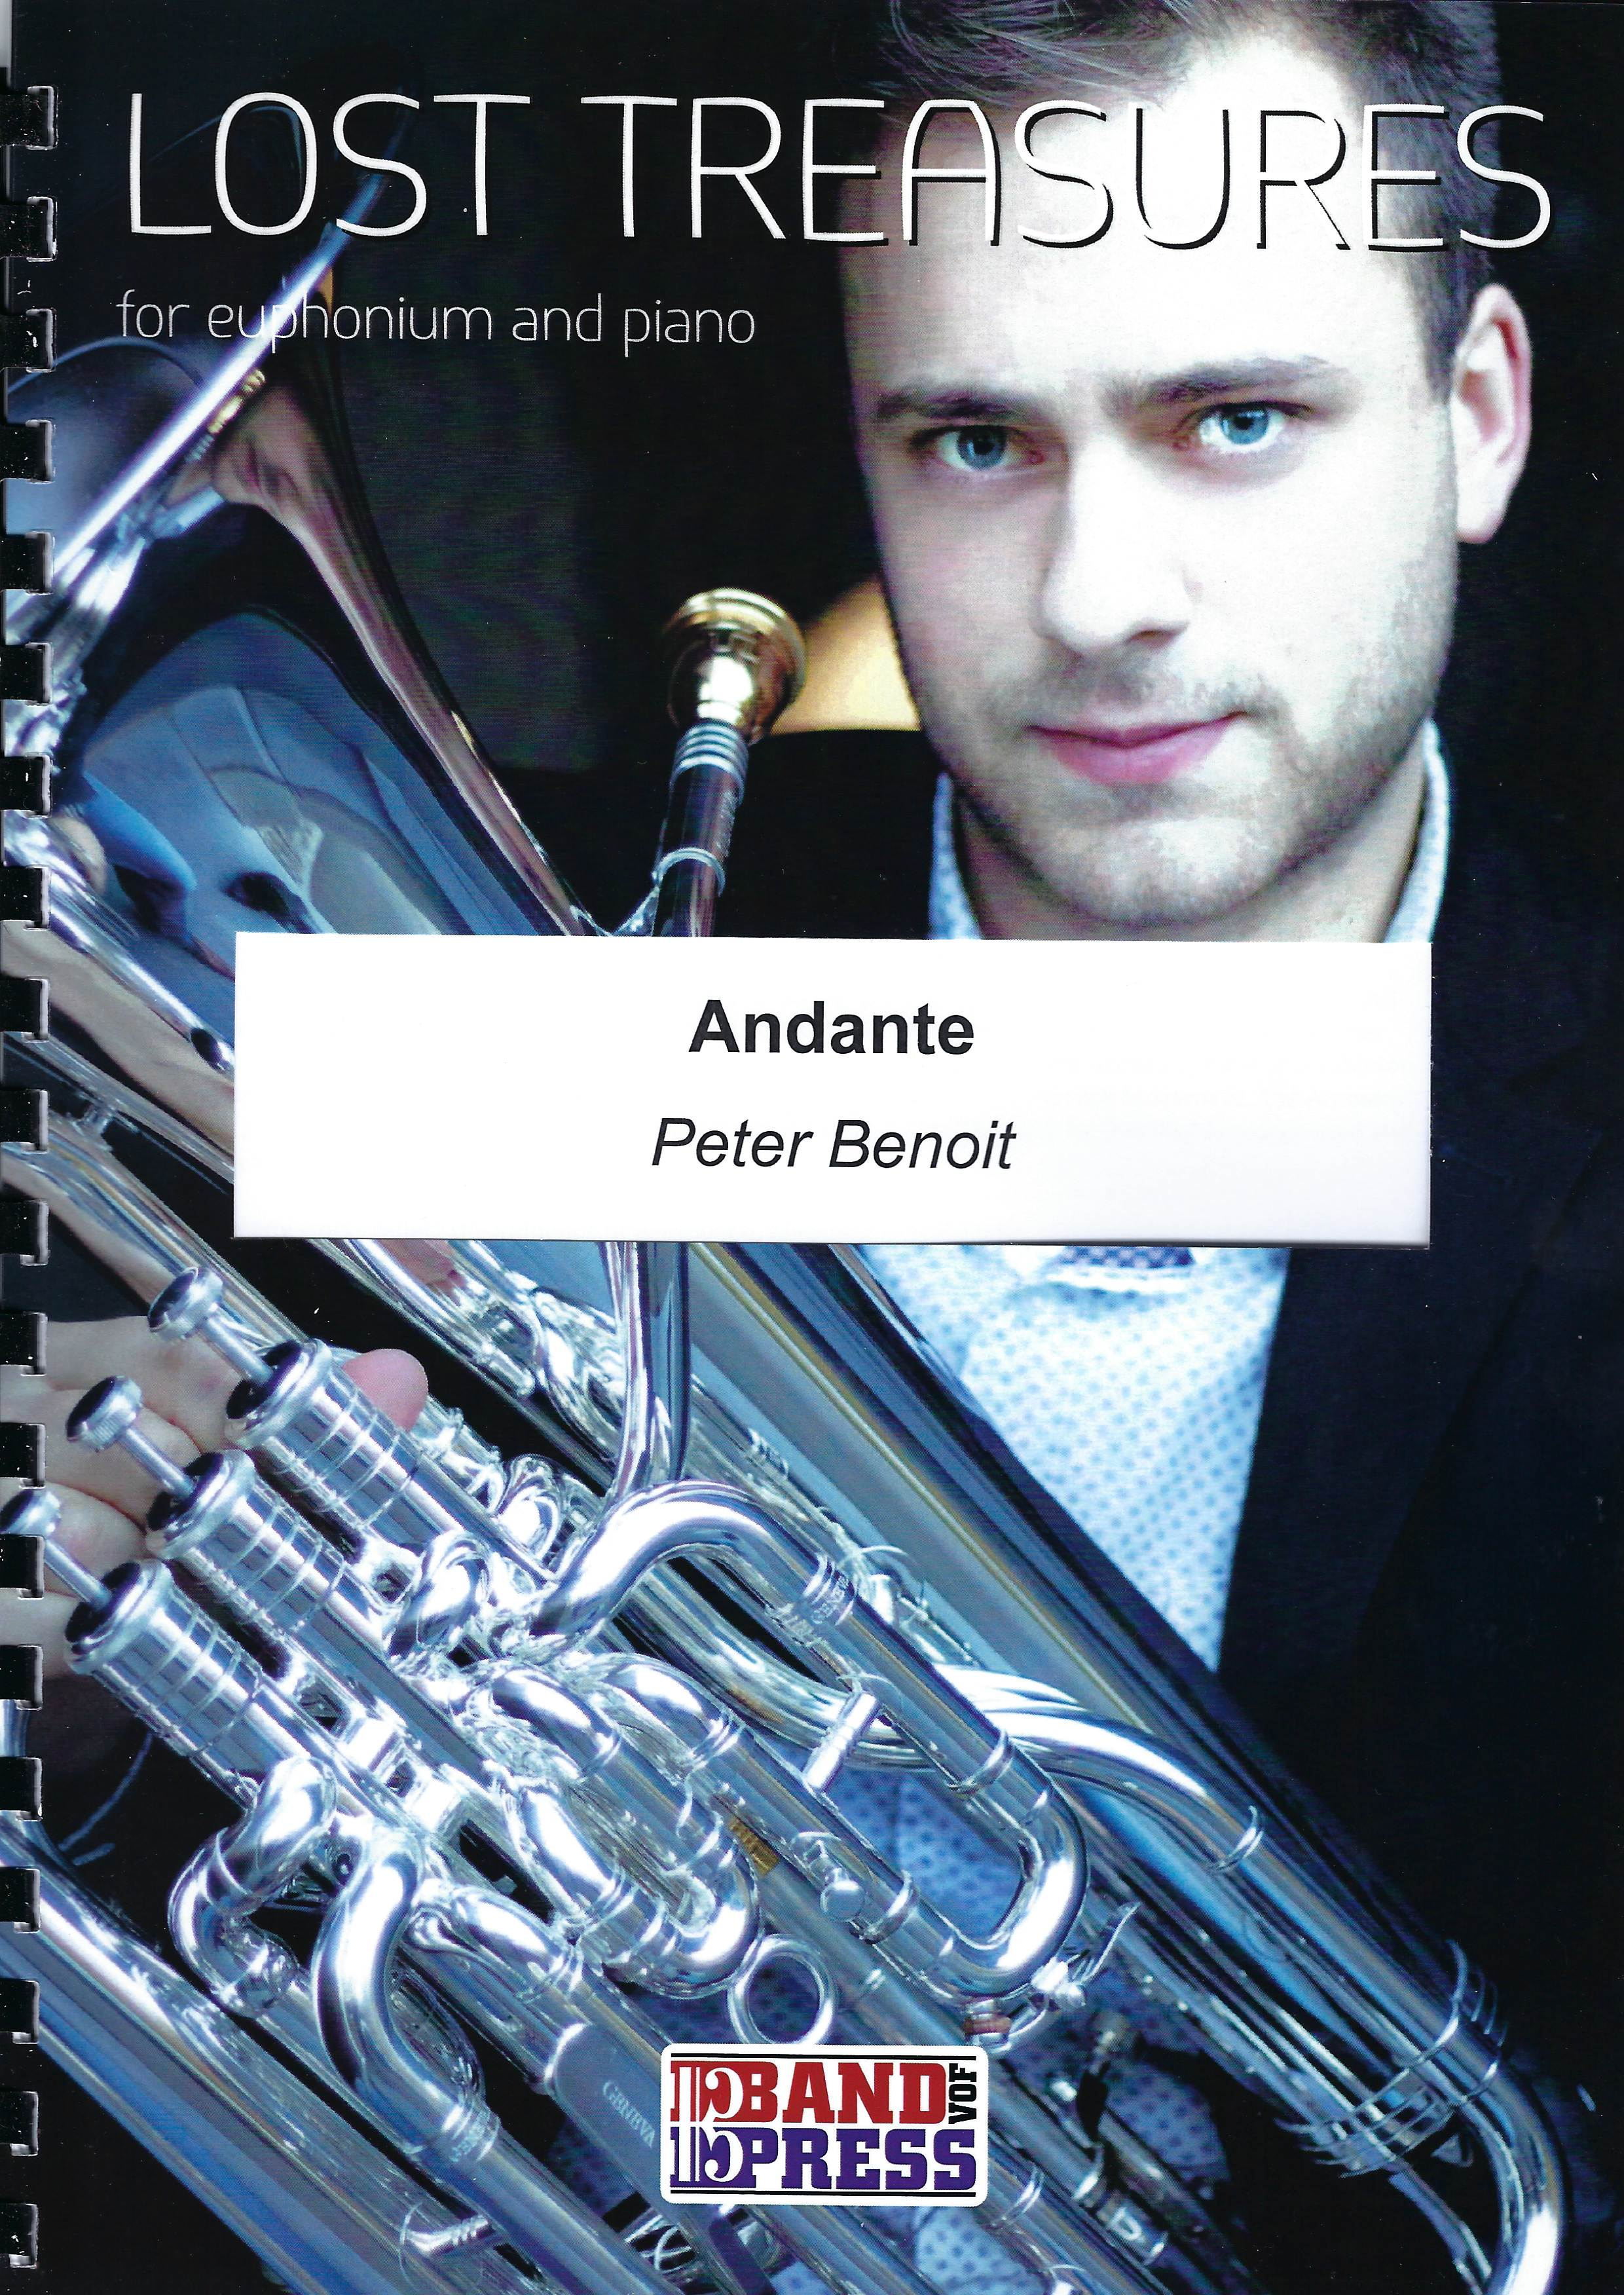 Andante - Peter Benoit - Euph and Piano (Lost Treasures Series)